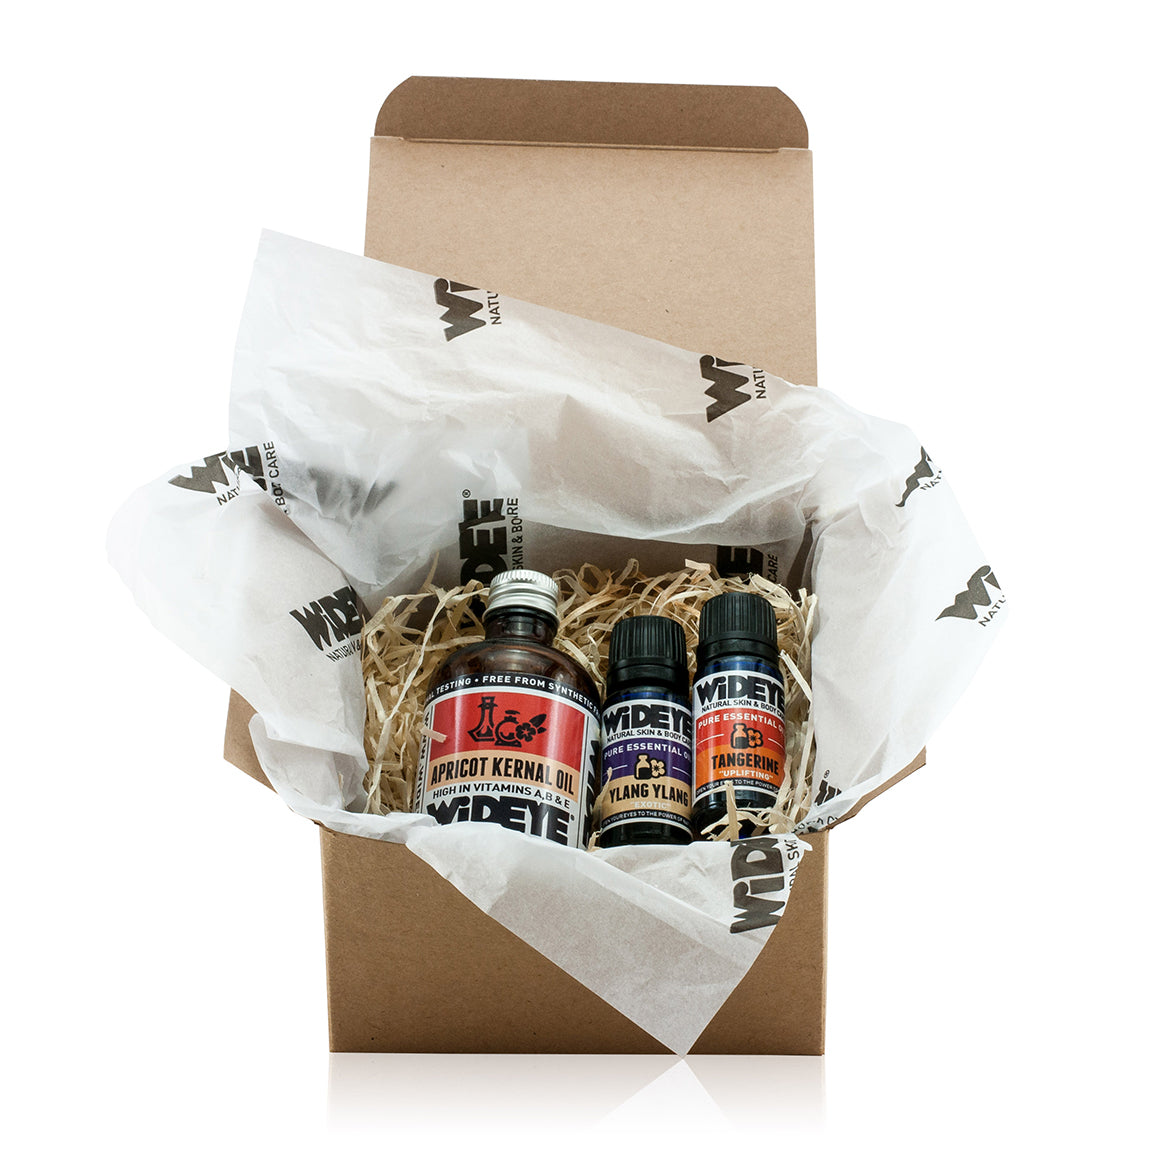 Natural aromatherapy essential oil gift box with Apricot oil, Ylang Ylang oil and Tangerine oil by WiDEYE.